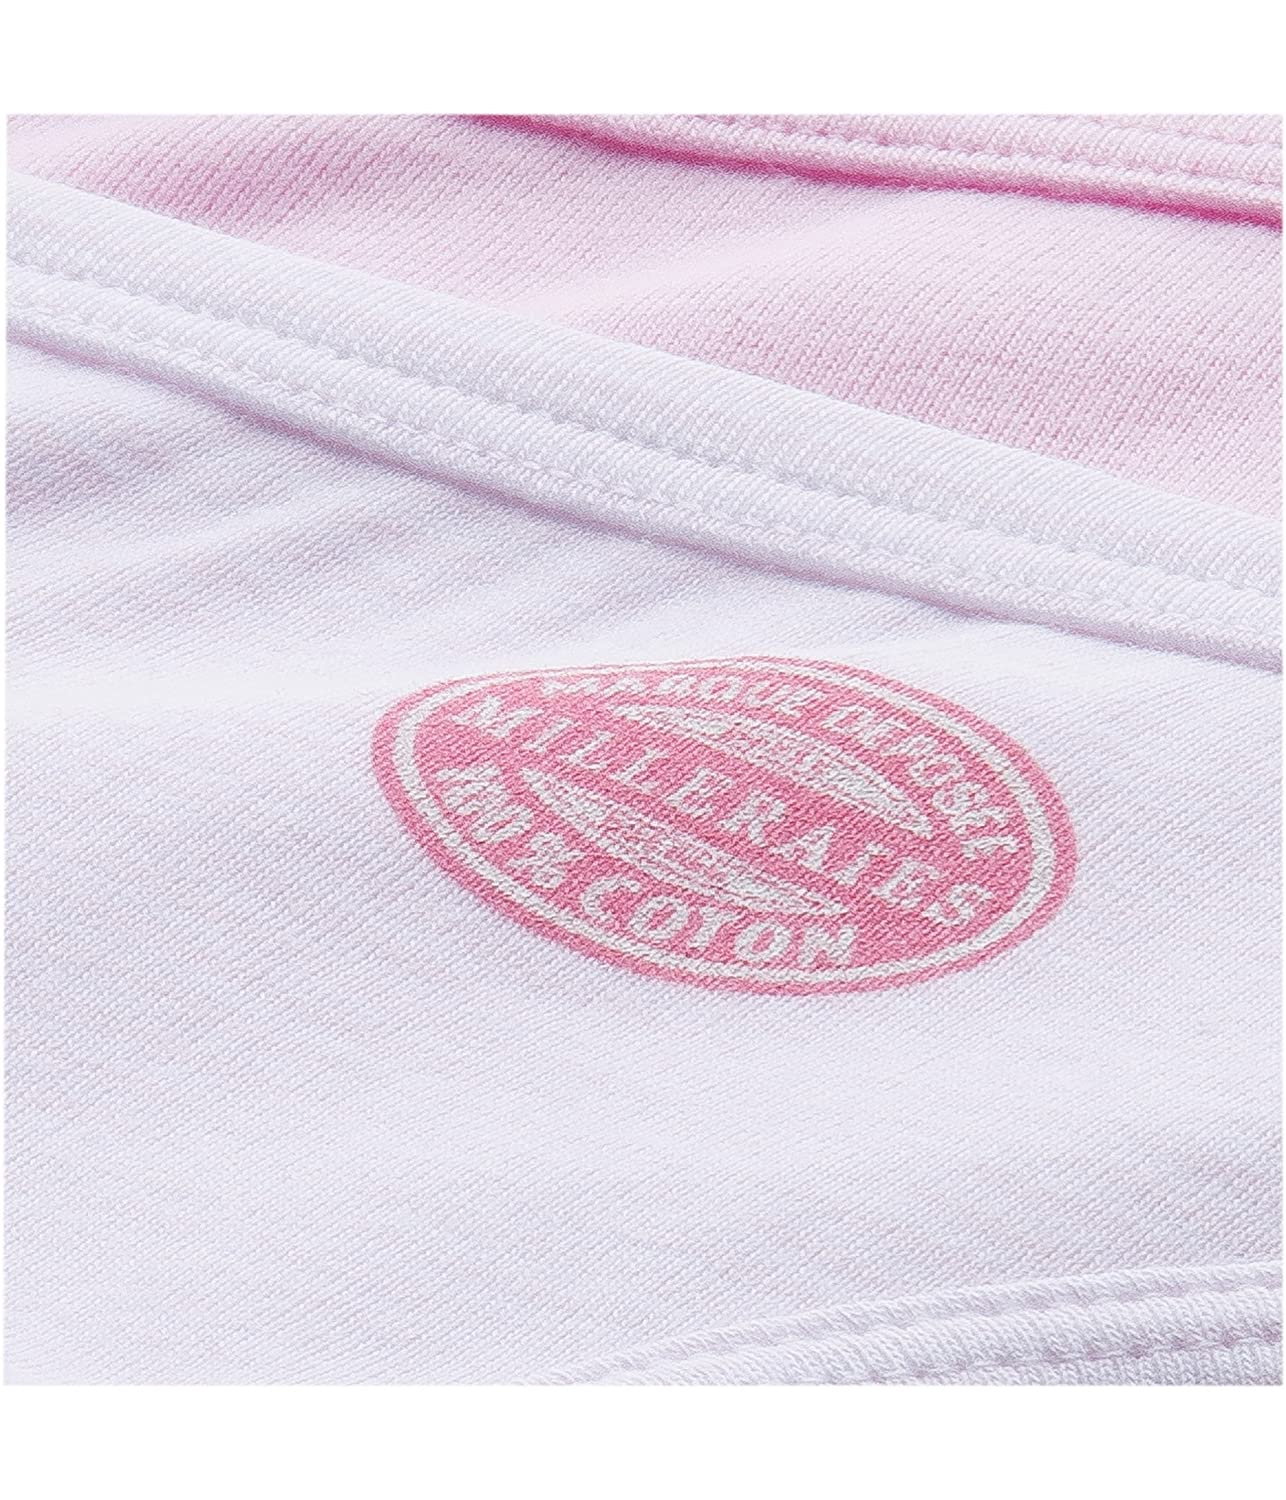 Petit Bateau 2 Pack Girls Panties Solid Pink//Striped Pink Style 15041 Sizes 2-18